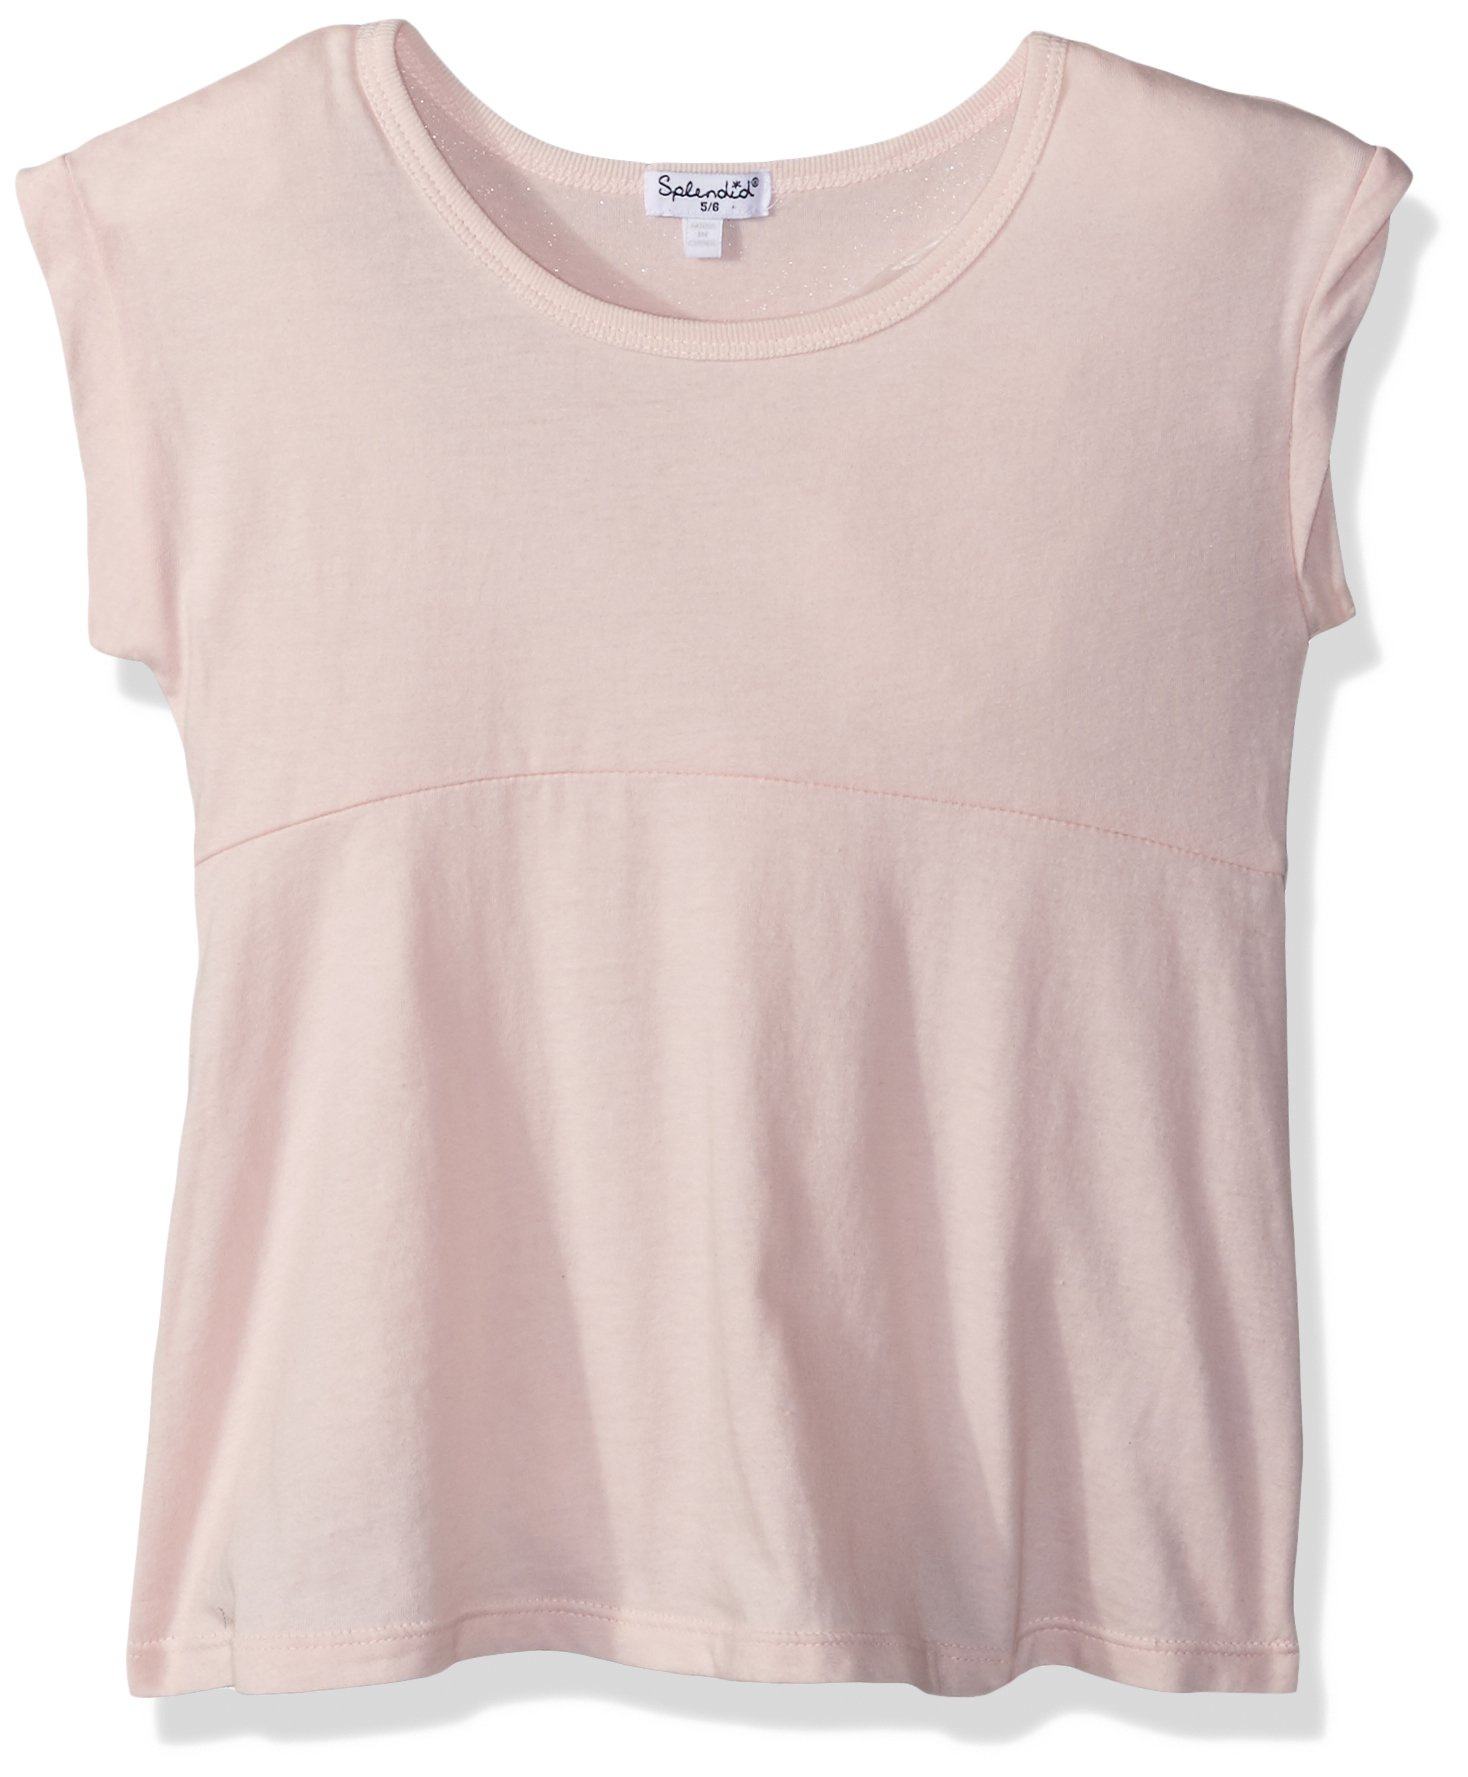 Splendid Toddler Girls' Vintage Whisper Short Sleeve Top, Seafoam Pink, 3T